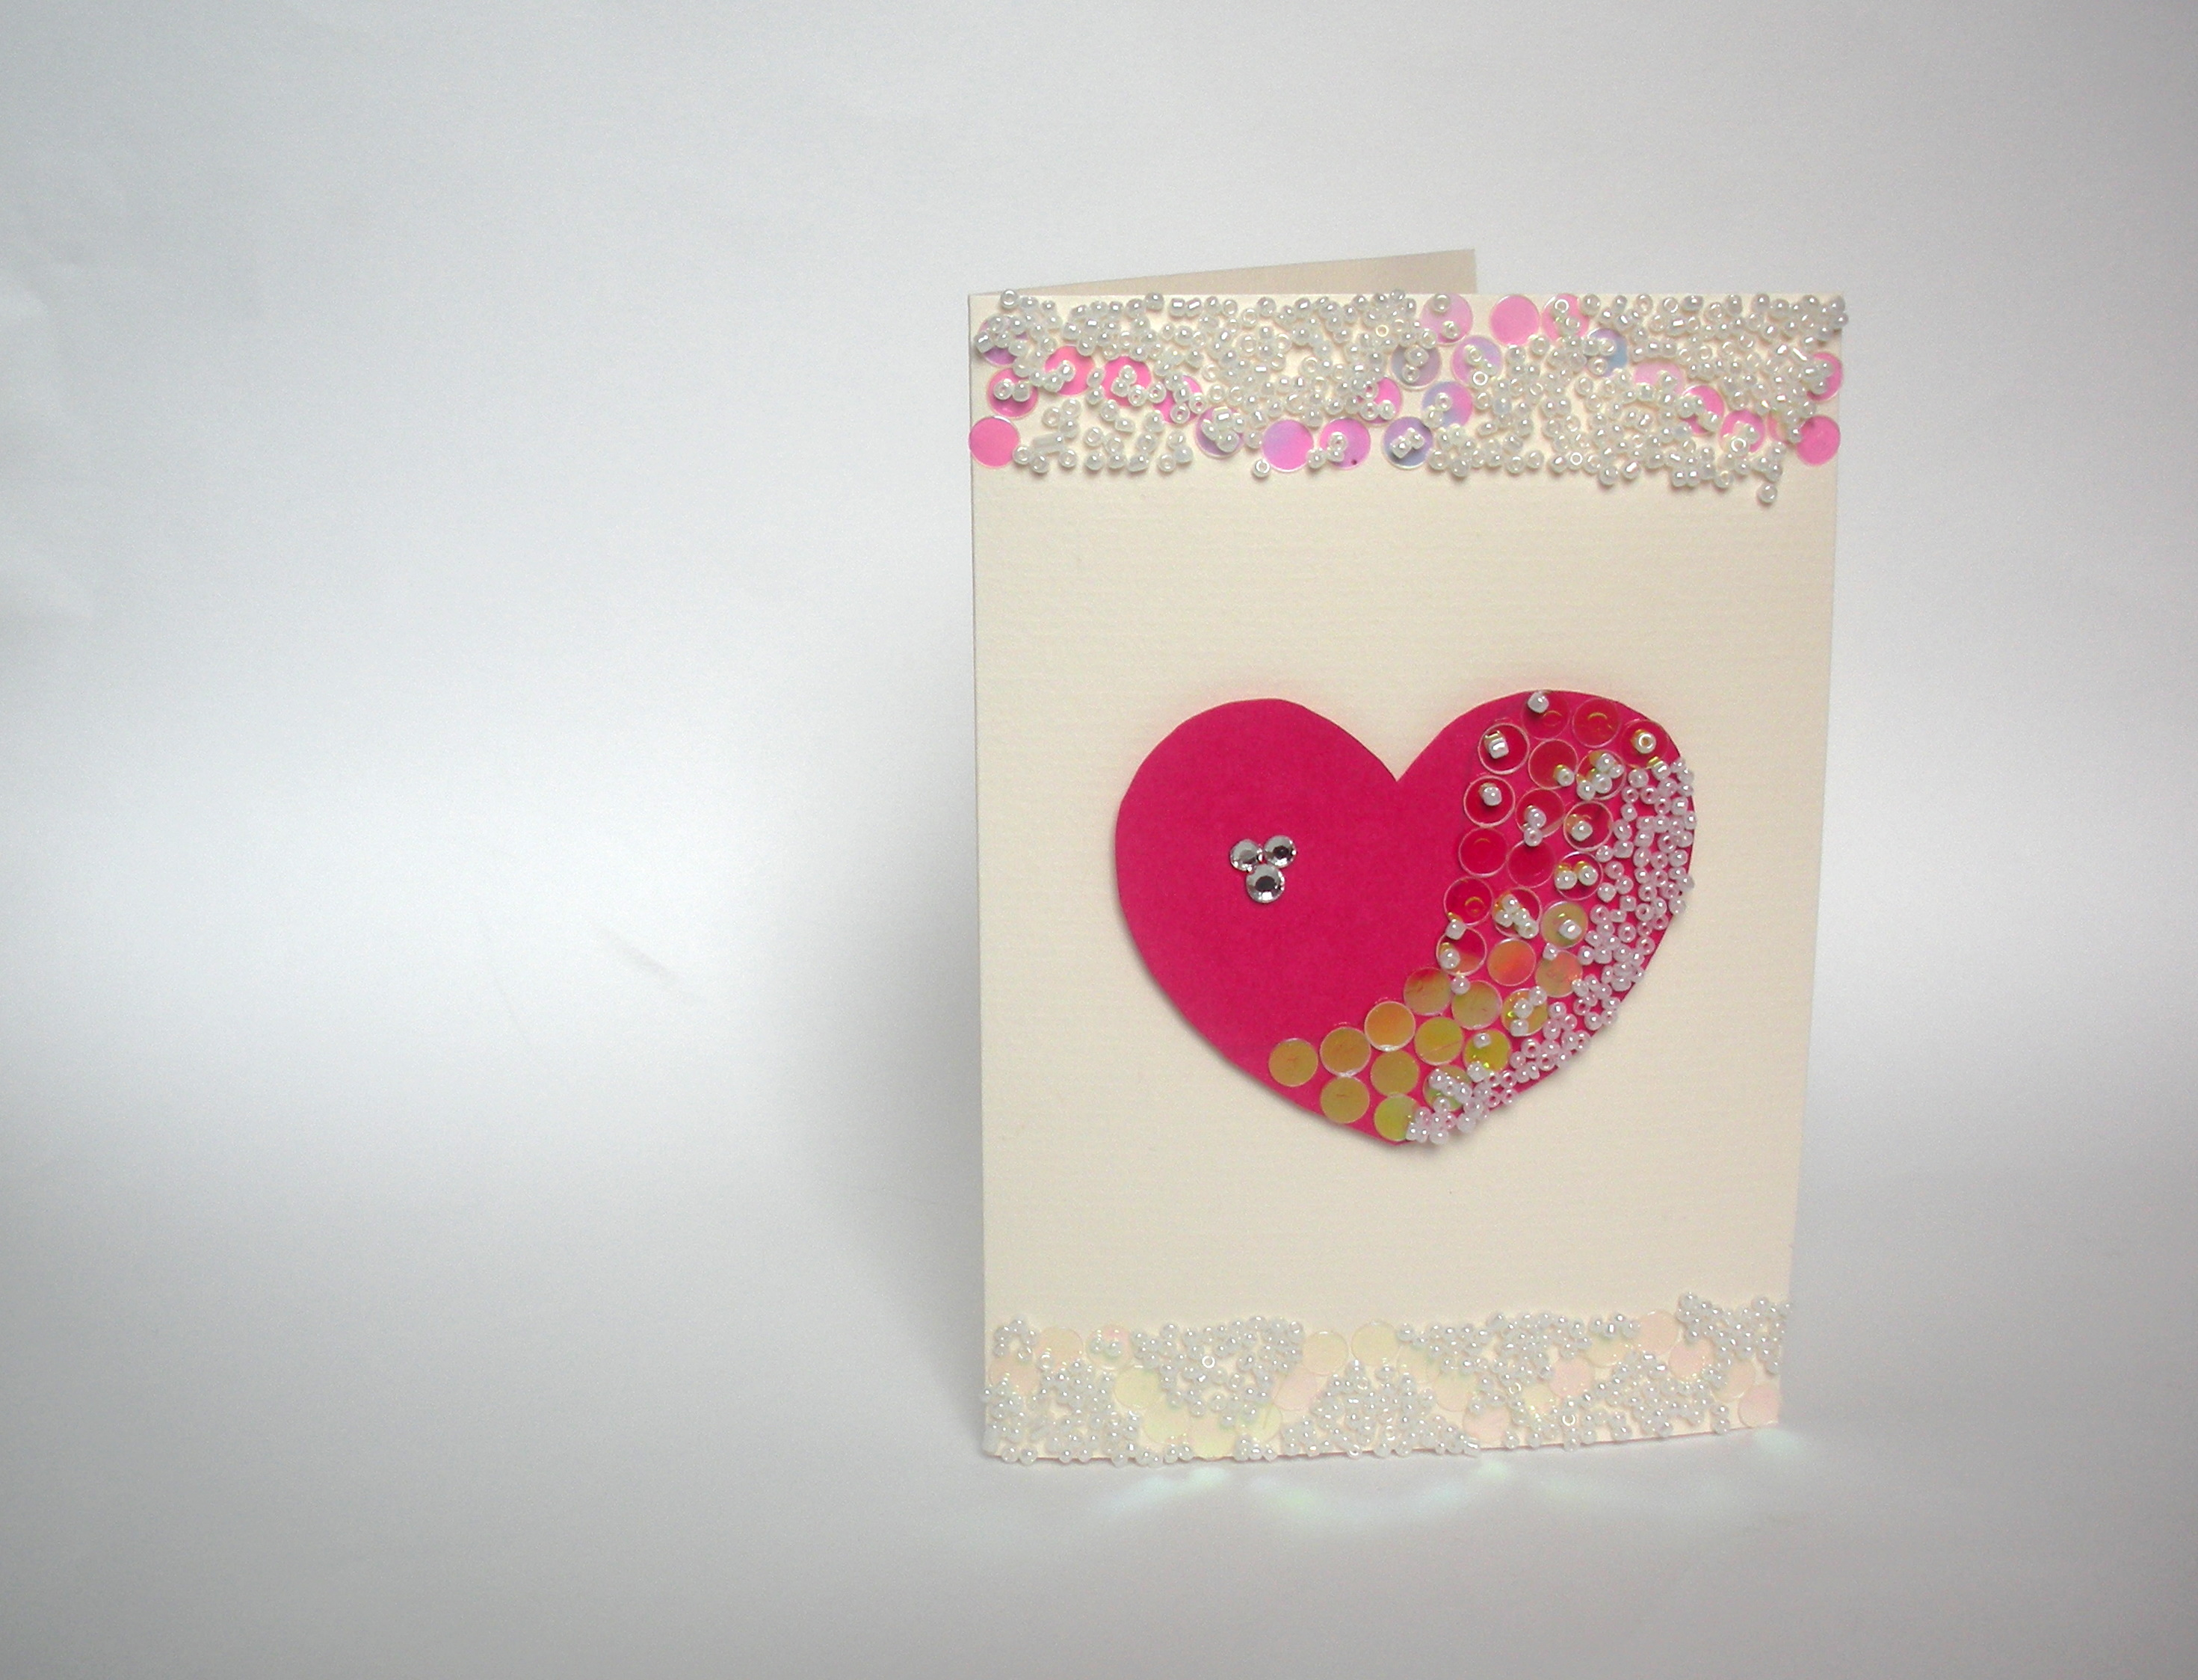 Relief Bead Valentine's Card